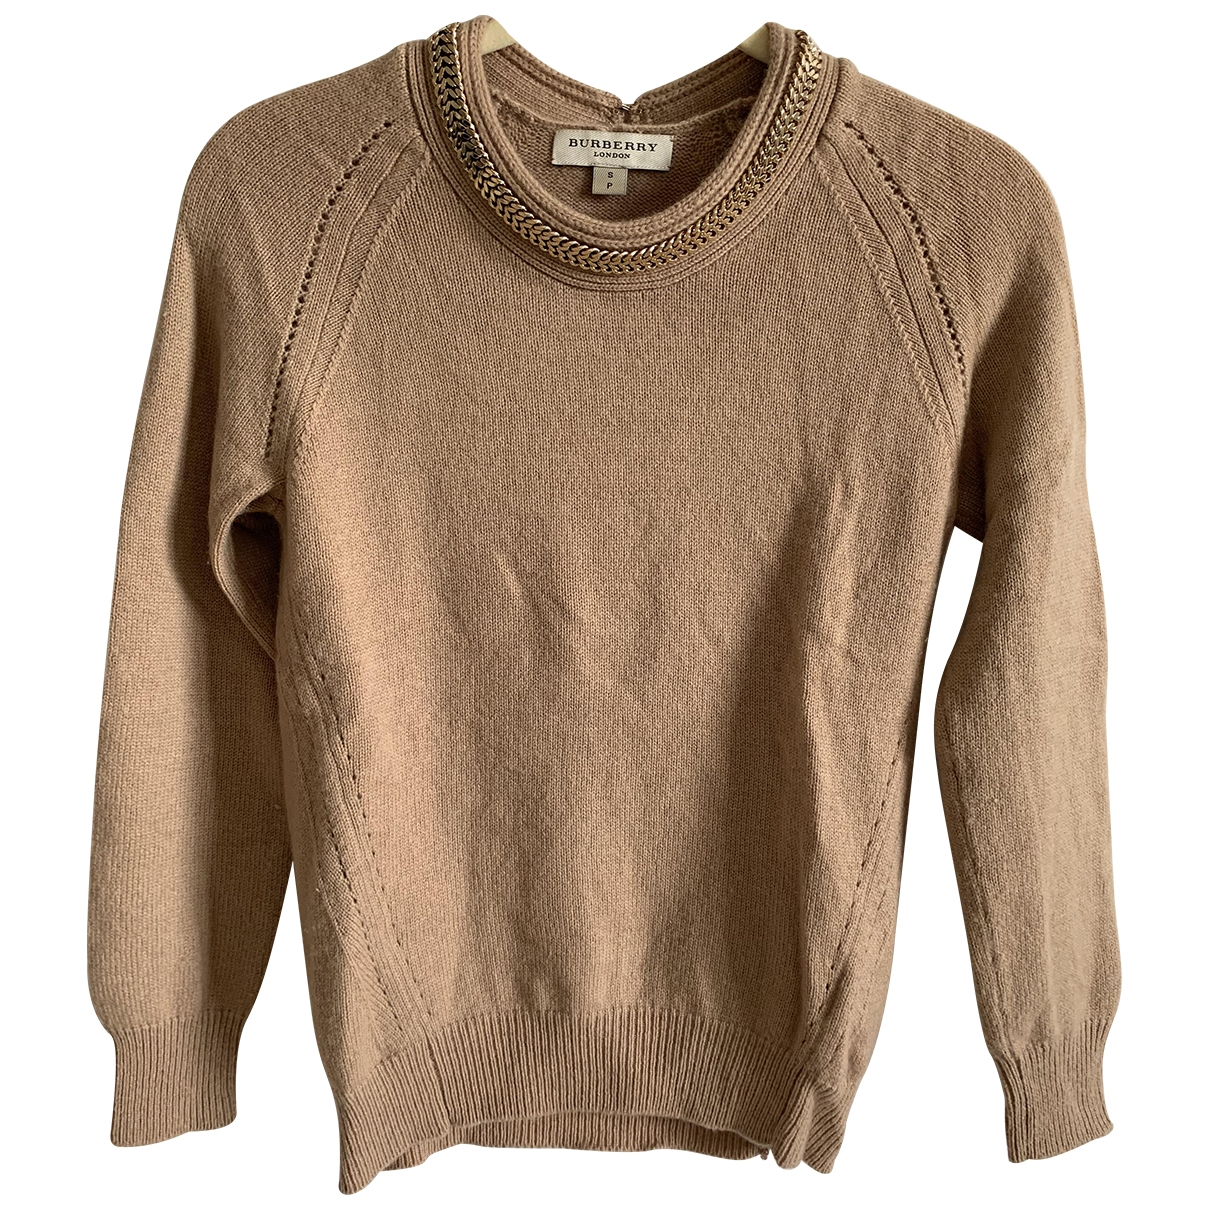 Burberry \N Beige Wool Knitwear for Women 6 UK